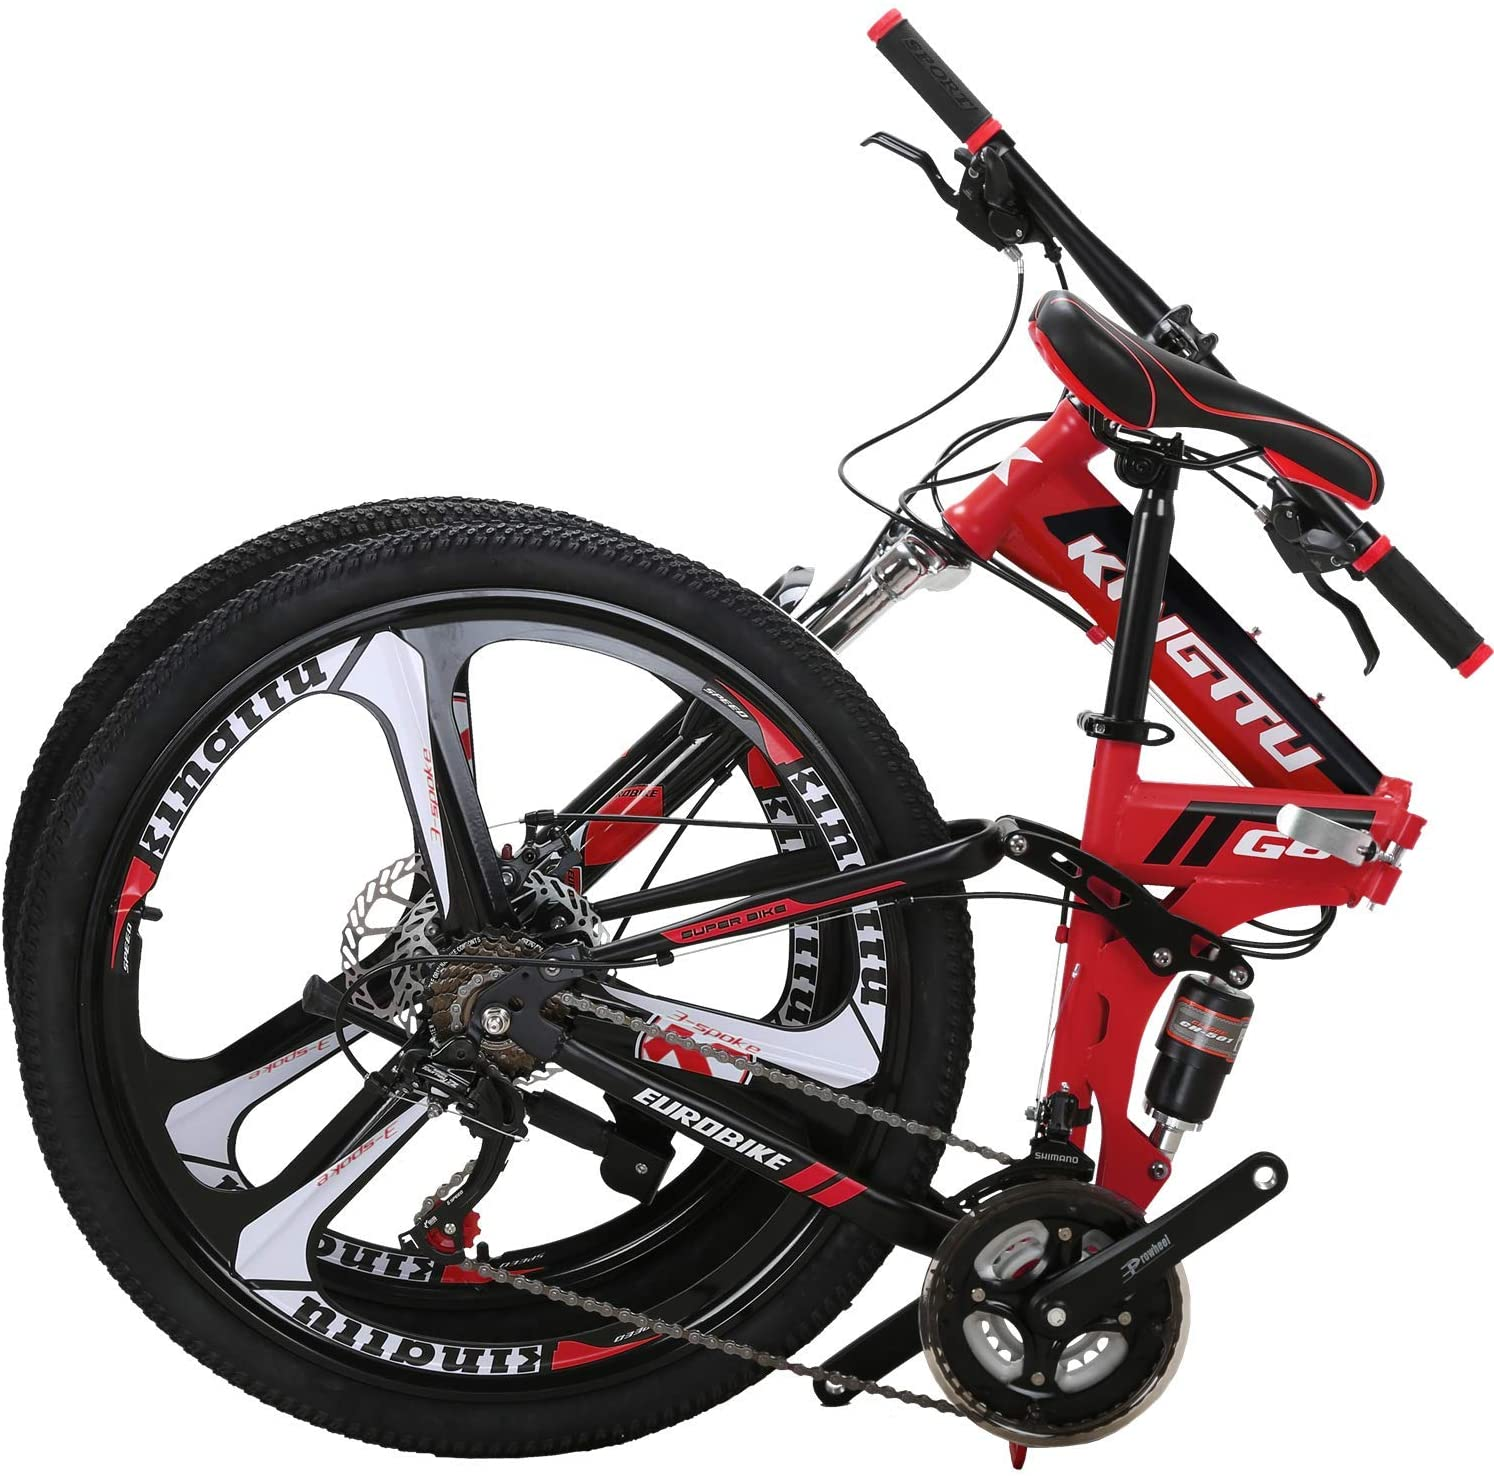 "OBK G4/G6 26"" Full Suspension Folding Mountain Bike"